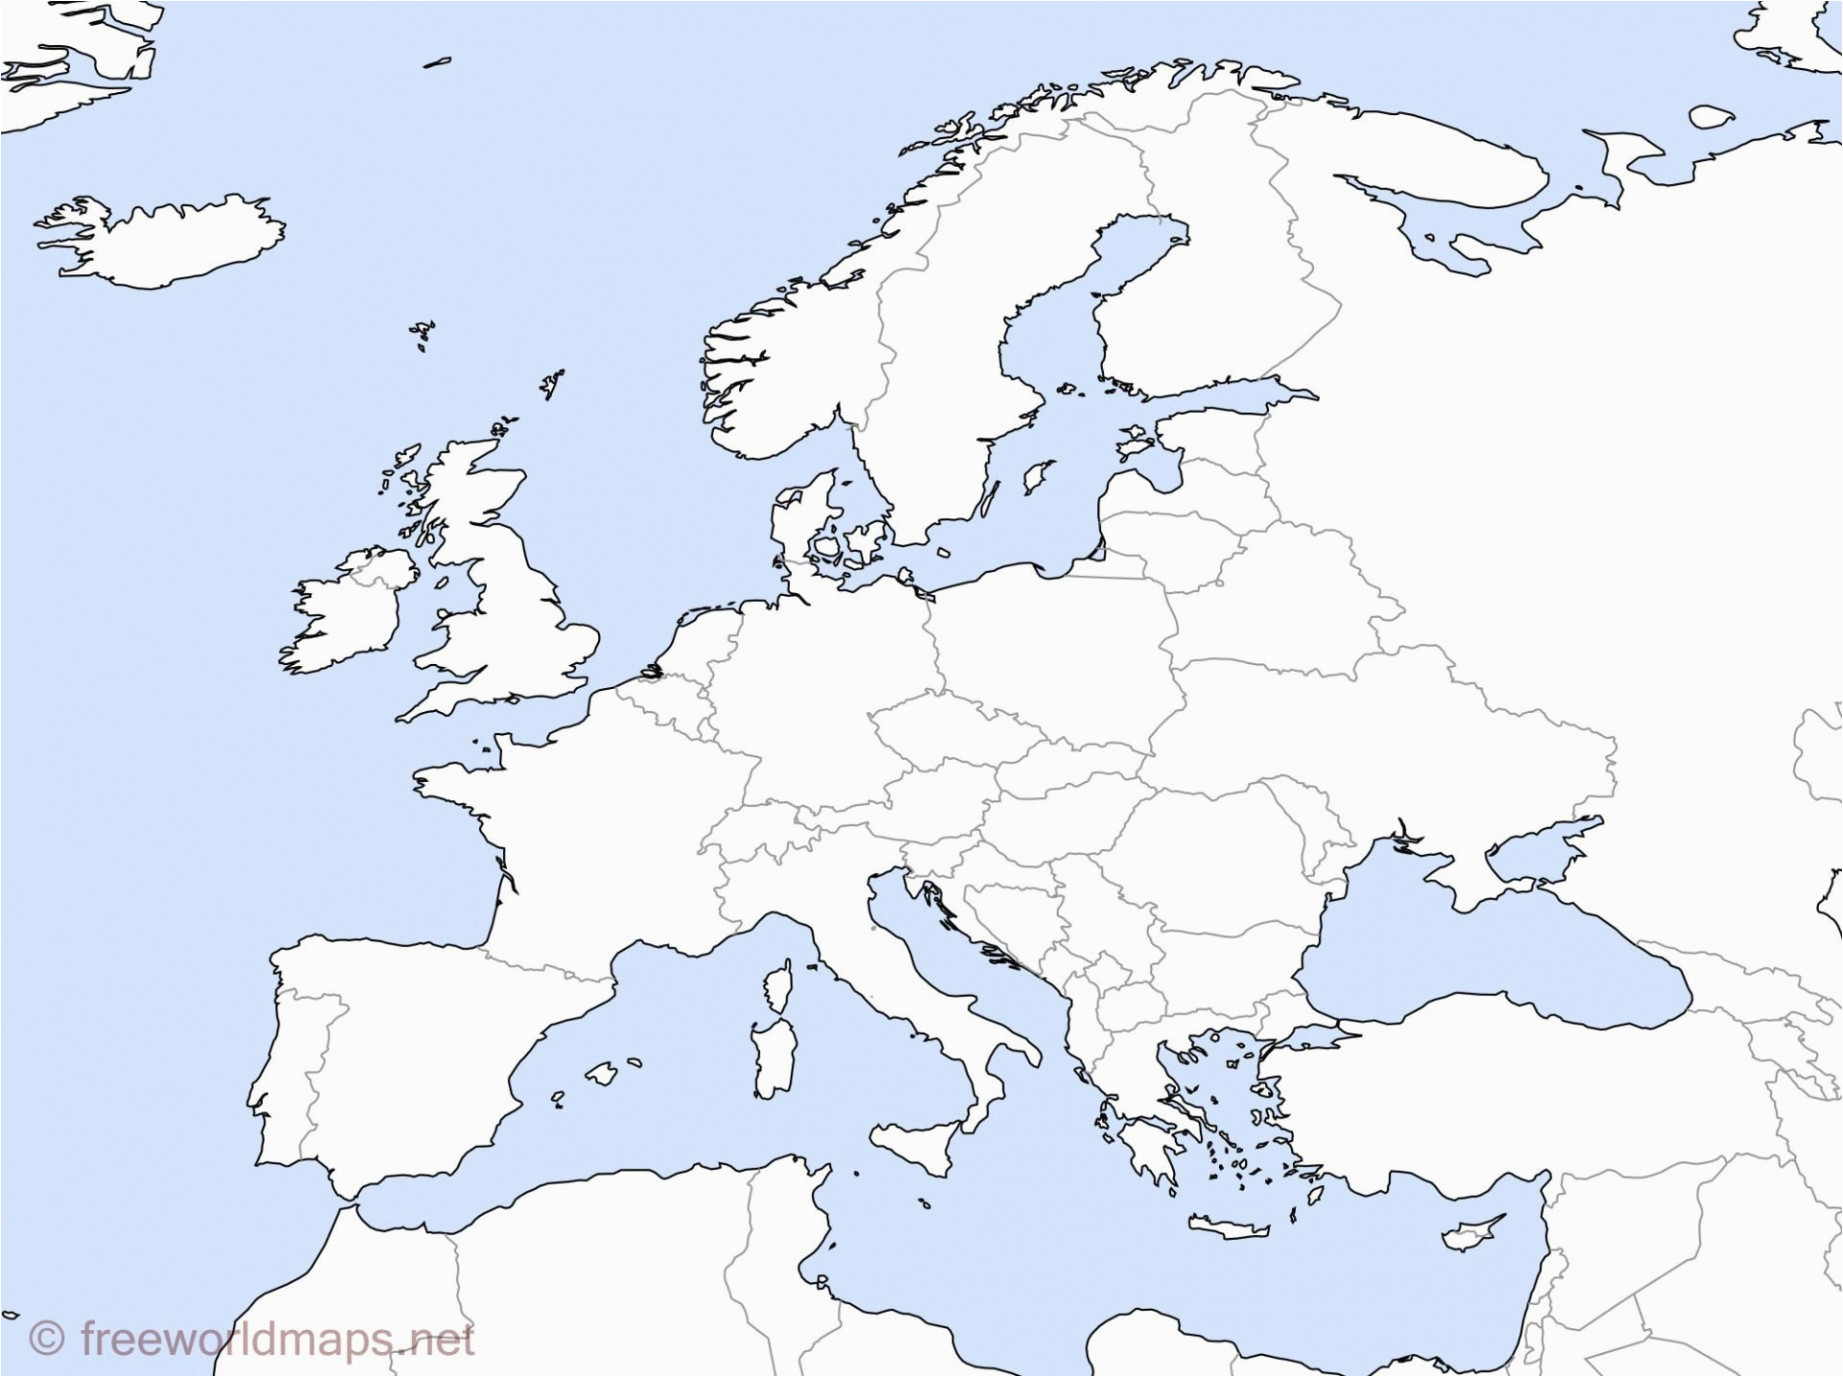 Blank Europe Map Pdf Unlabeled Map Of Europe Climatejourney org